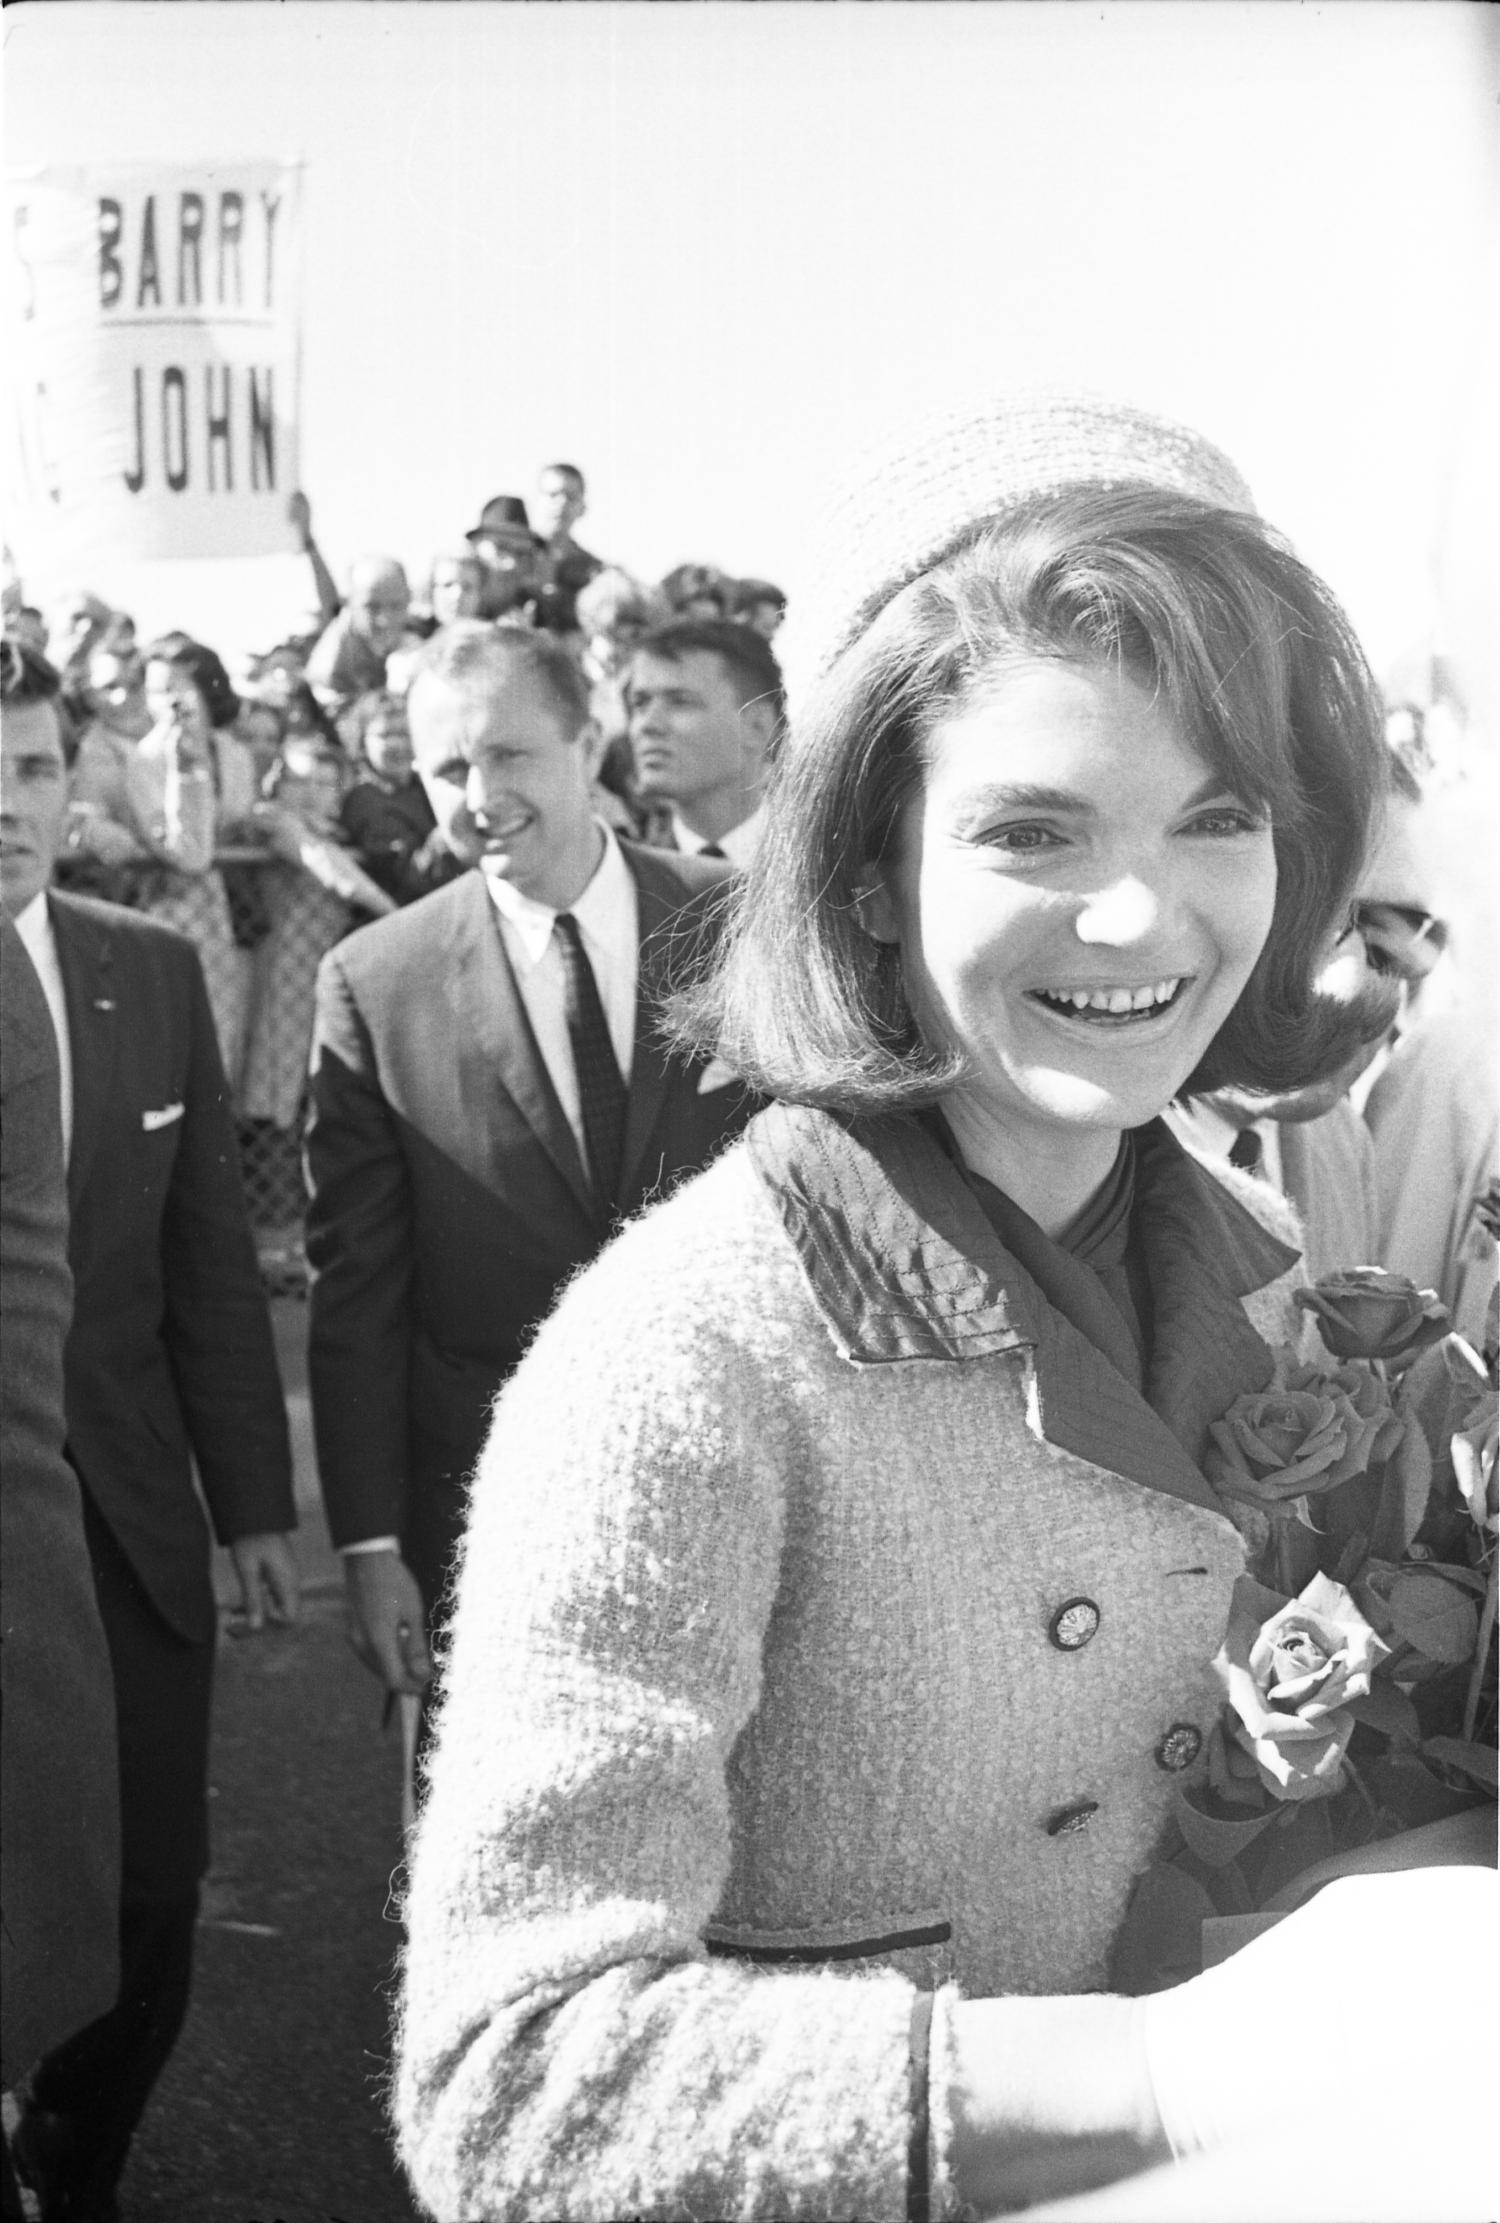 [Jacqueline Kennedy greeting the crowd at Love Field]                                                                                                      [Sequence #]: 1 of 1